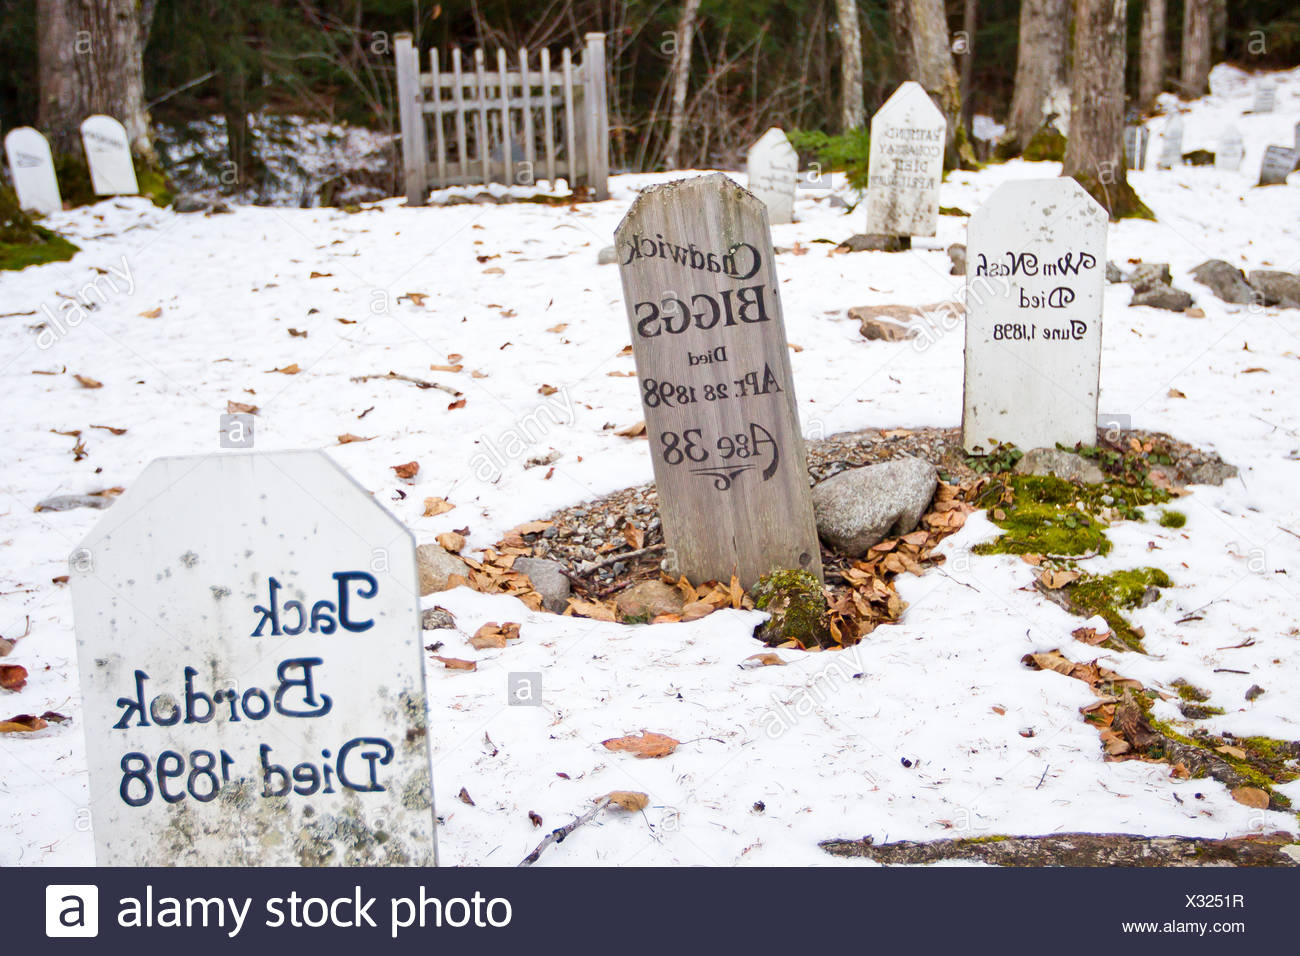 Snow covers a cemetery for Gold Rush related deaths. - Stock Image